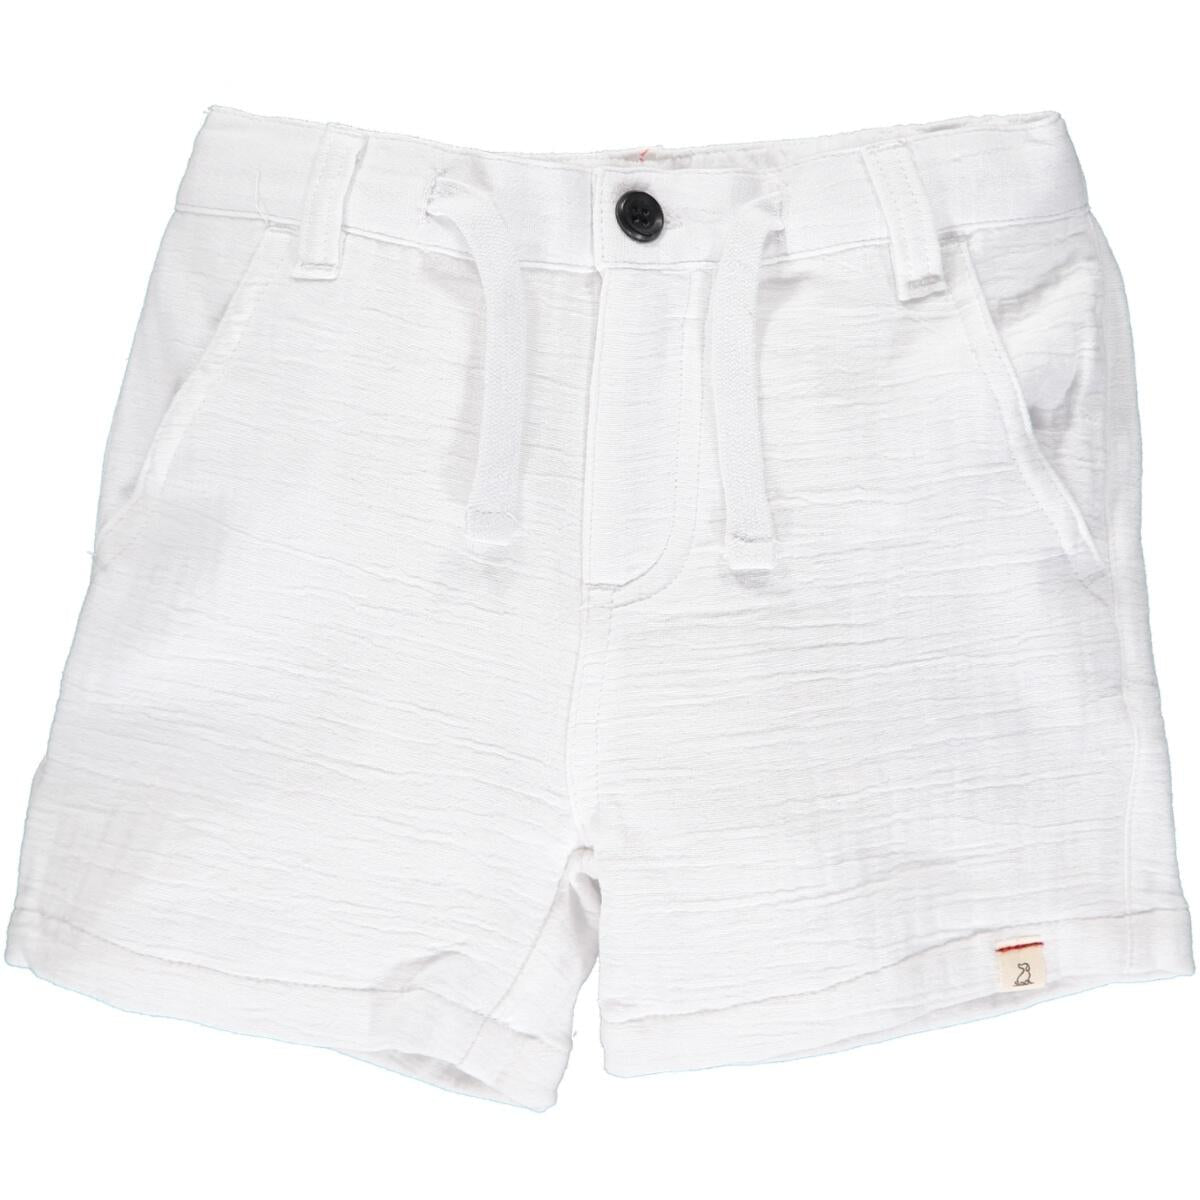 Crew Linen Shorts in White